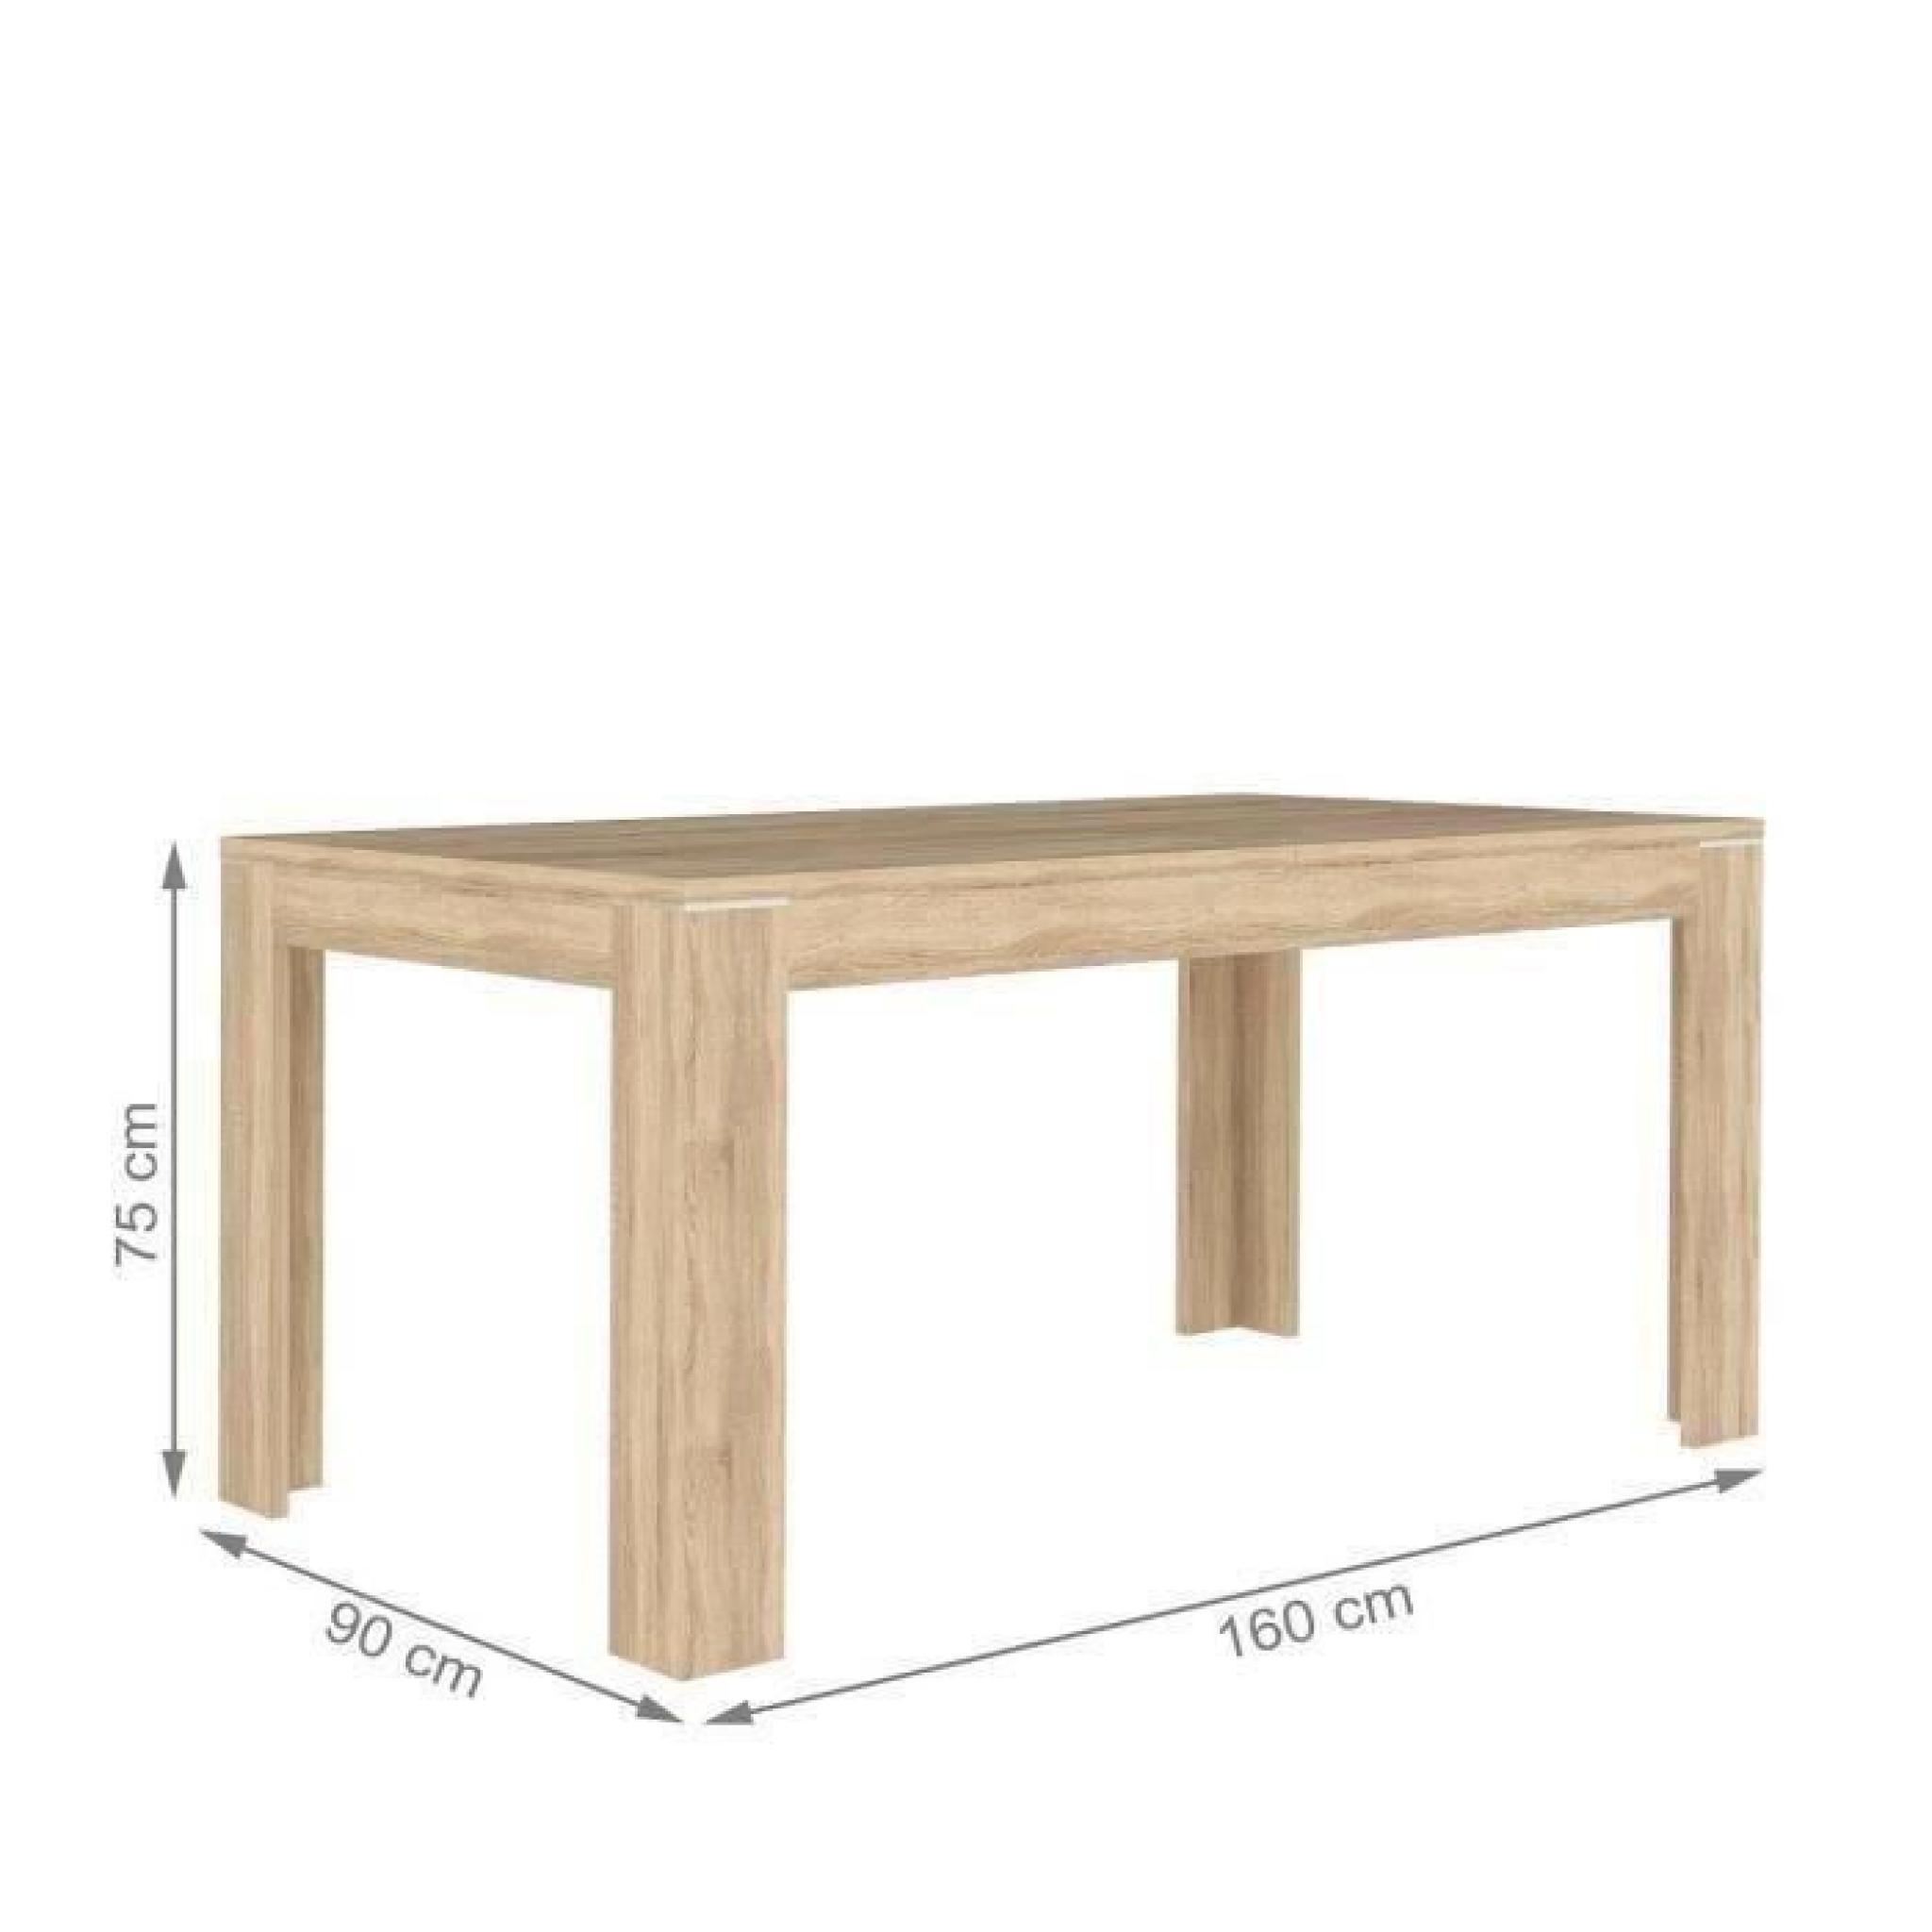 Table salle a manger extensible pas cher maison design for Table salle a manger console extensible